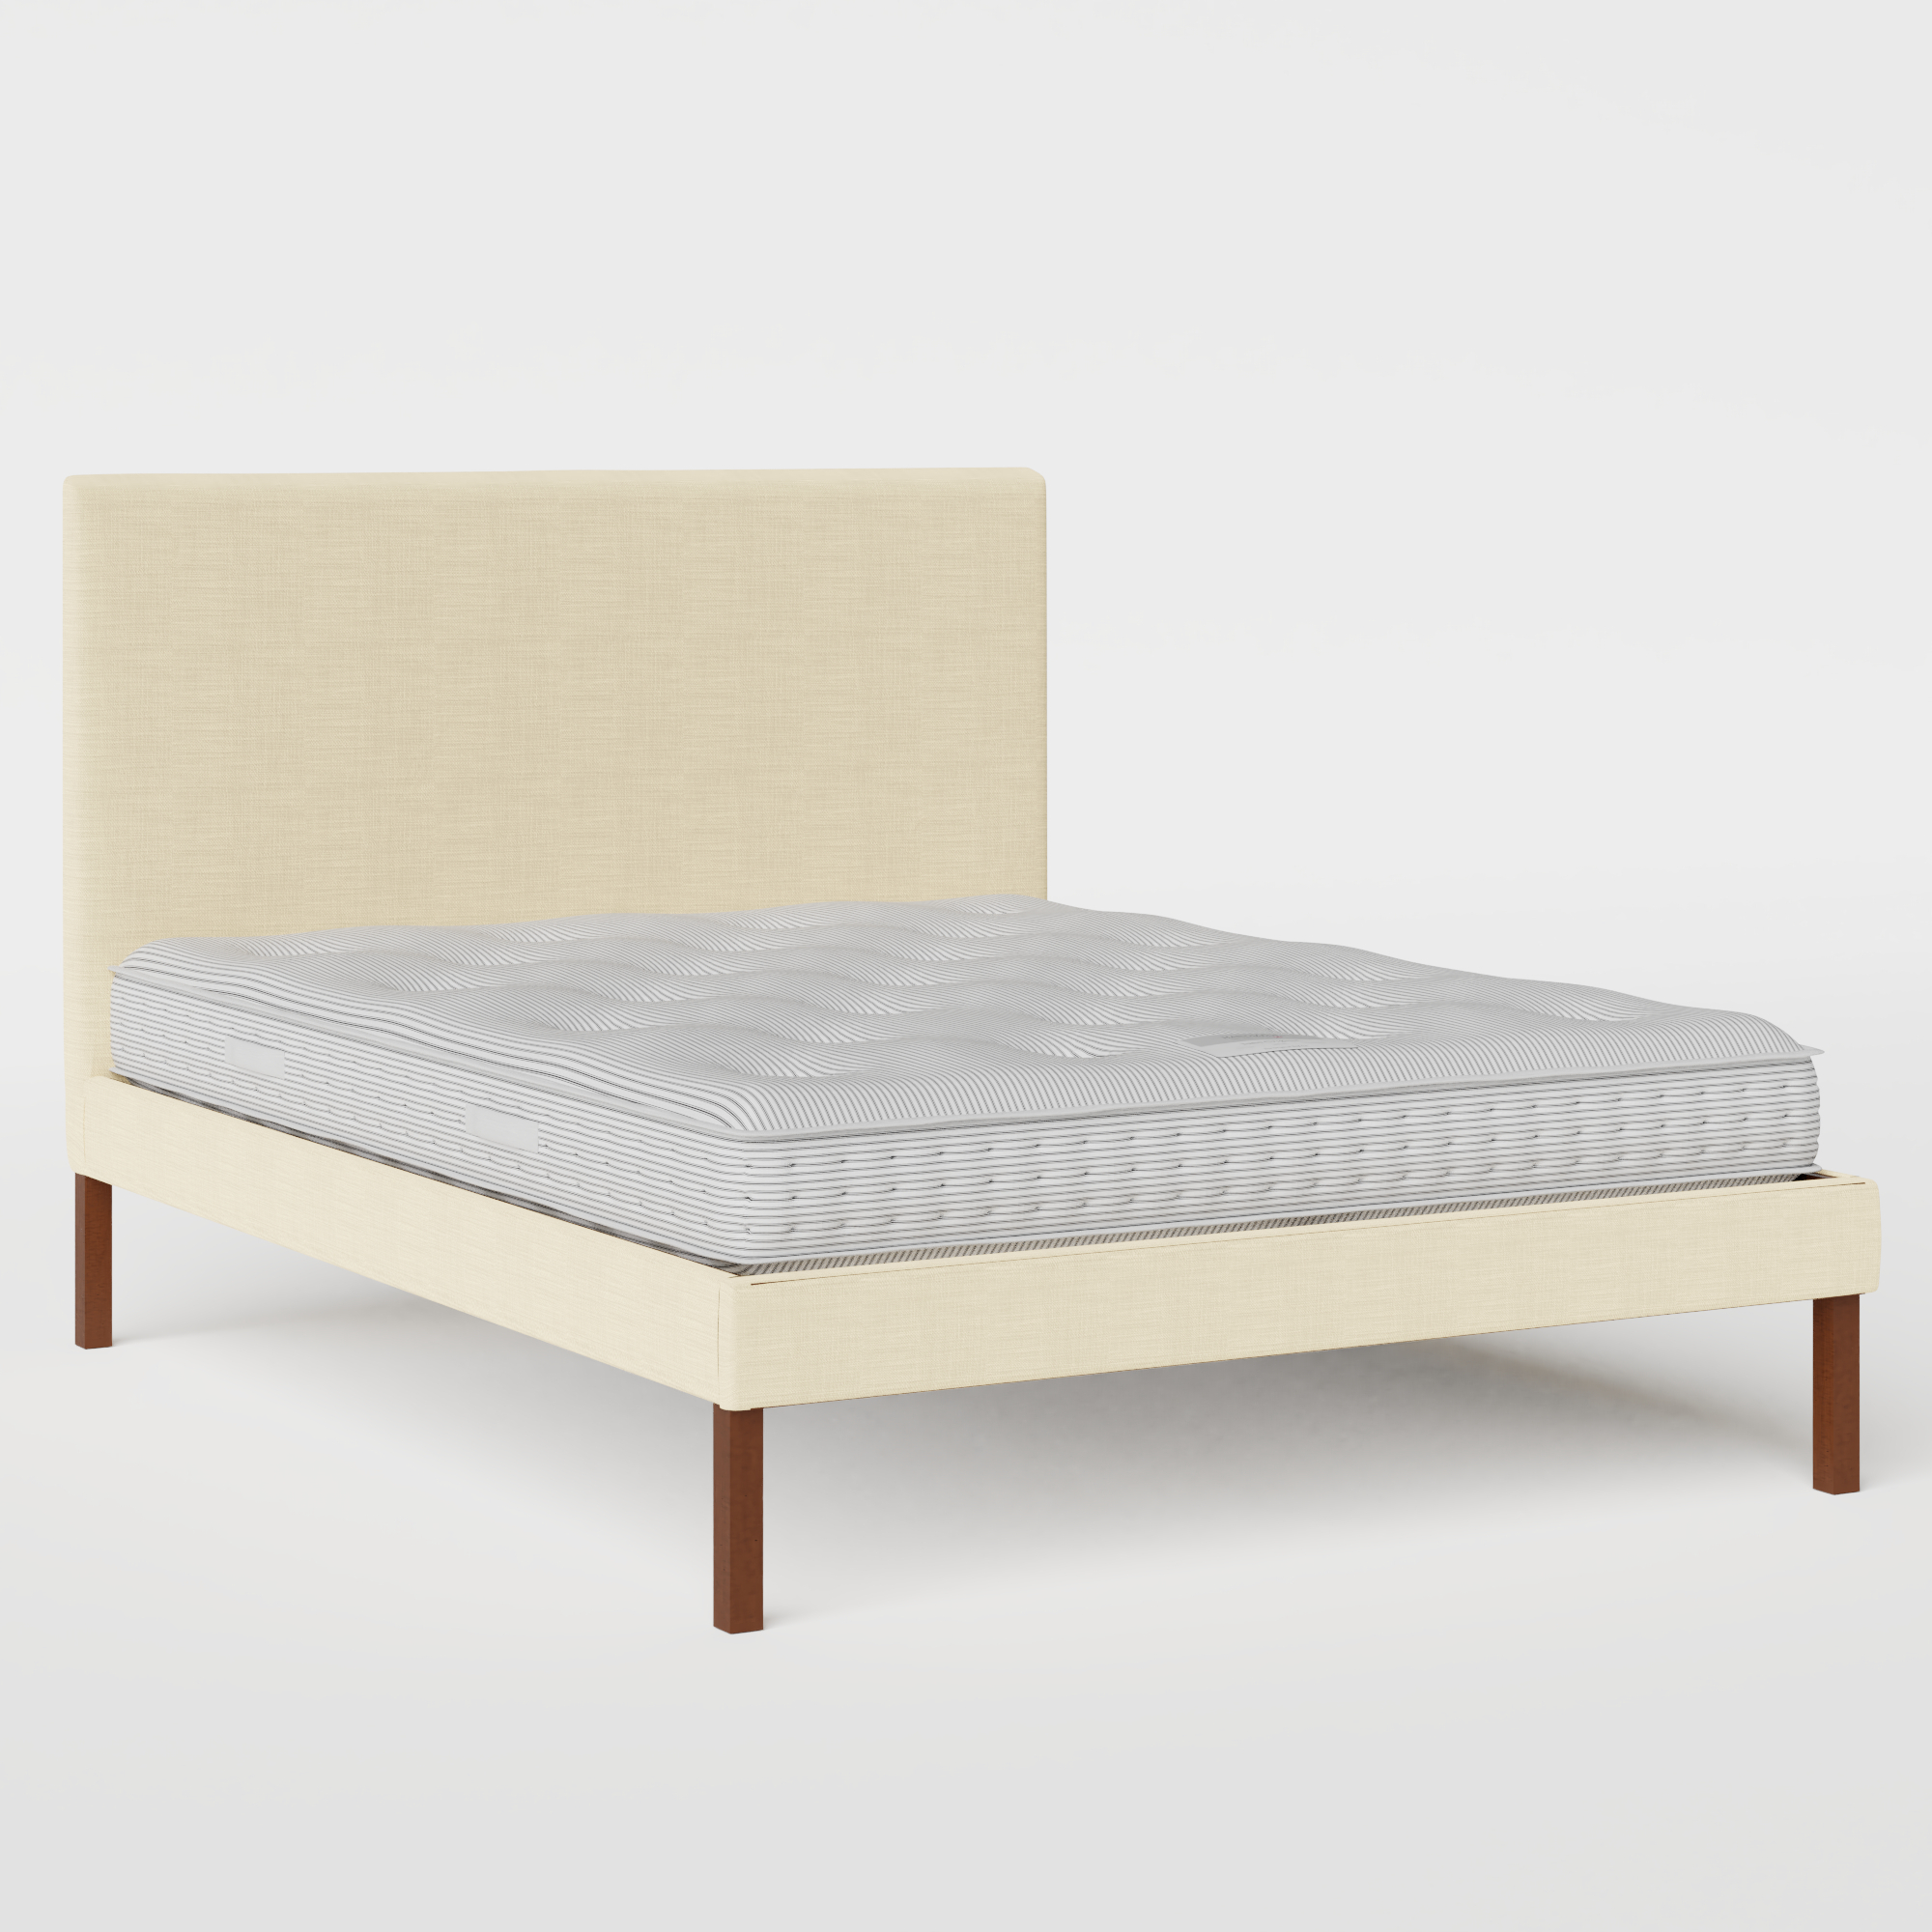 Misaki Upholstered upholstered bed in natural fabric